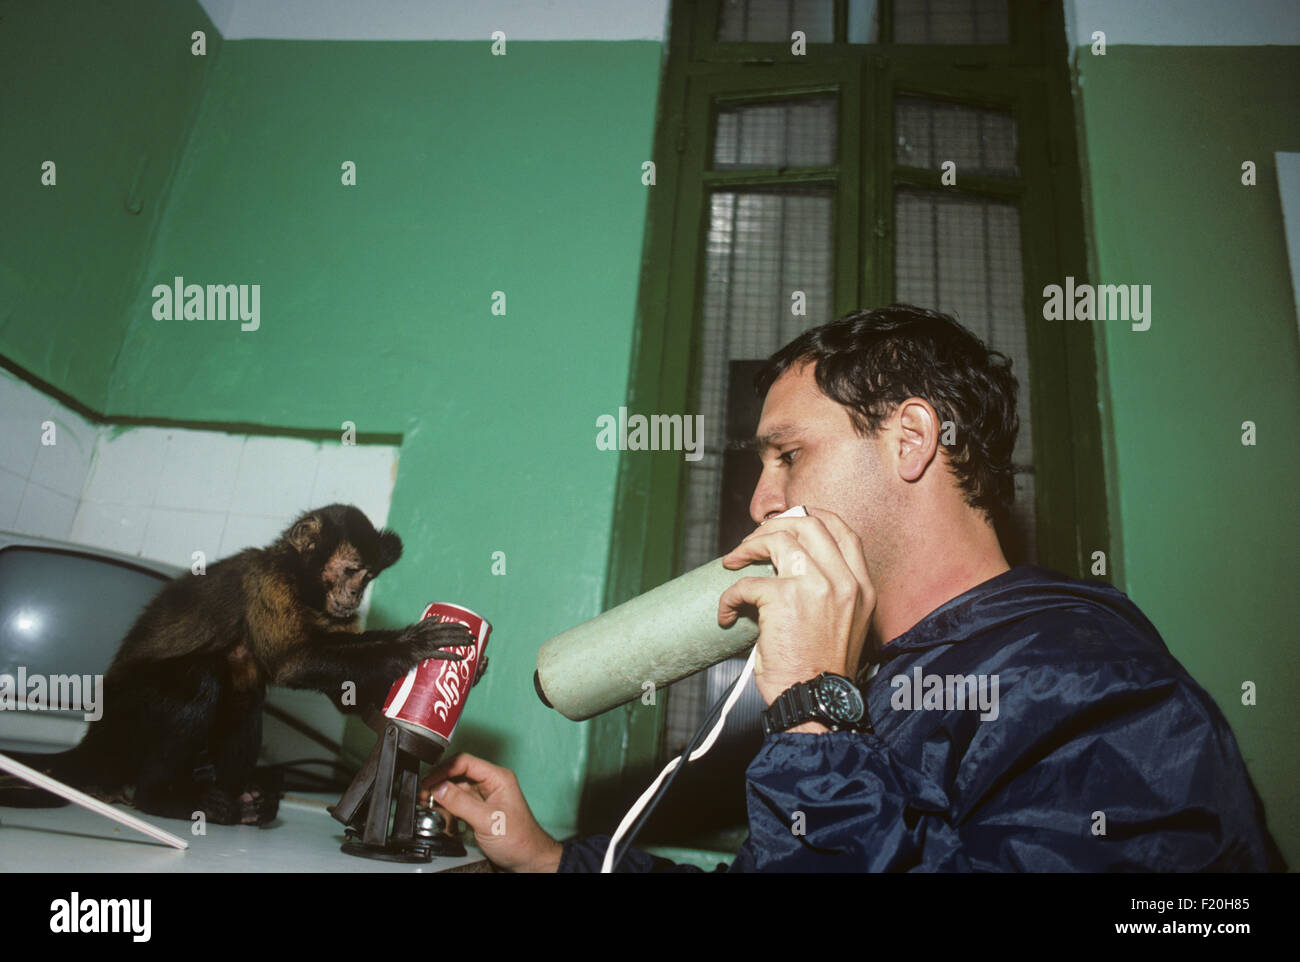 Capuchin monkey being trained to feed  paraplegic  / handicapped people, puts soda into holder.  Israel Stock Photo